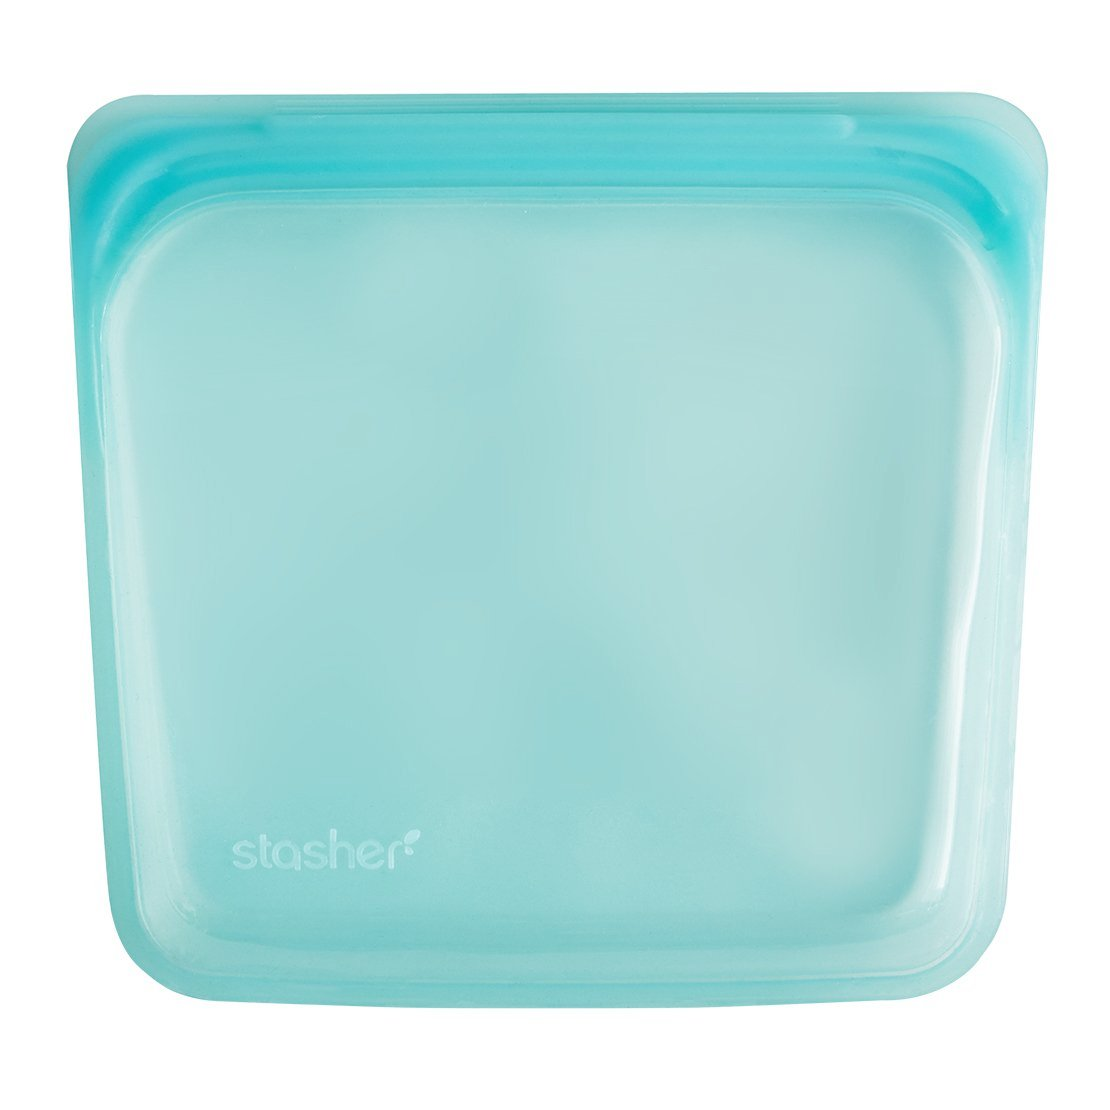 Bolsa hermética reusable de silicona Aqua - Just the Sea by SEA LOVERS